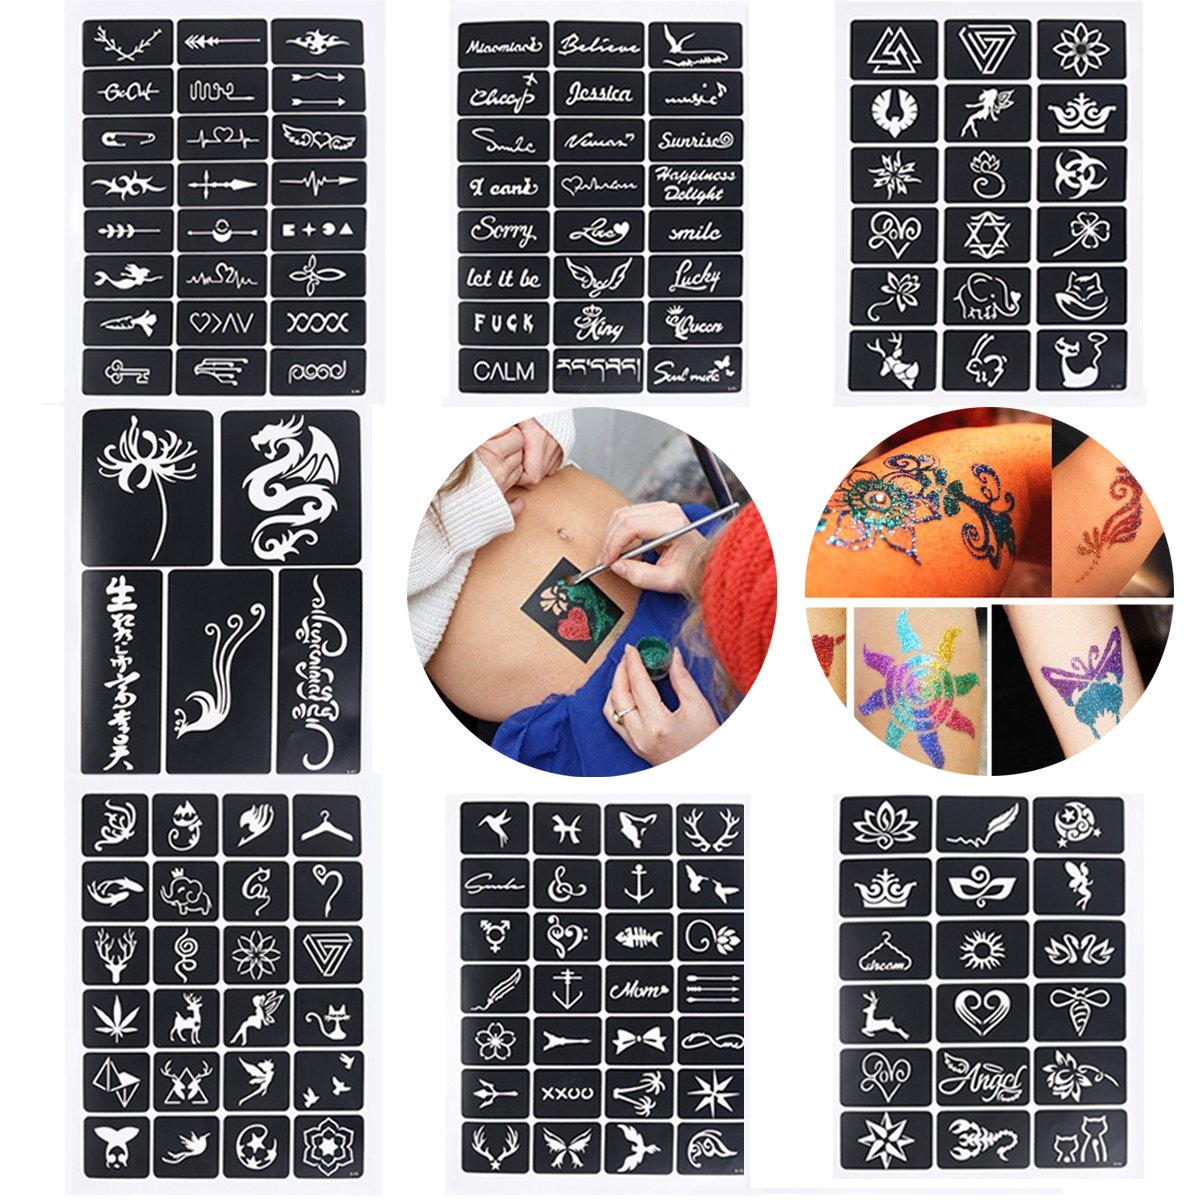 Xiangfeng 115 Mini Sheets Self-adhesive Tattoo Stencils Template Indian Painting Stencil Tattoo for Body Art Painting Glitter Airbrush Tattoo,Style Random